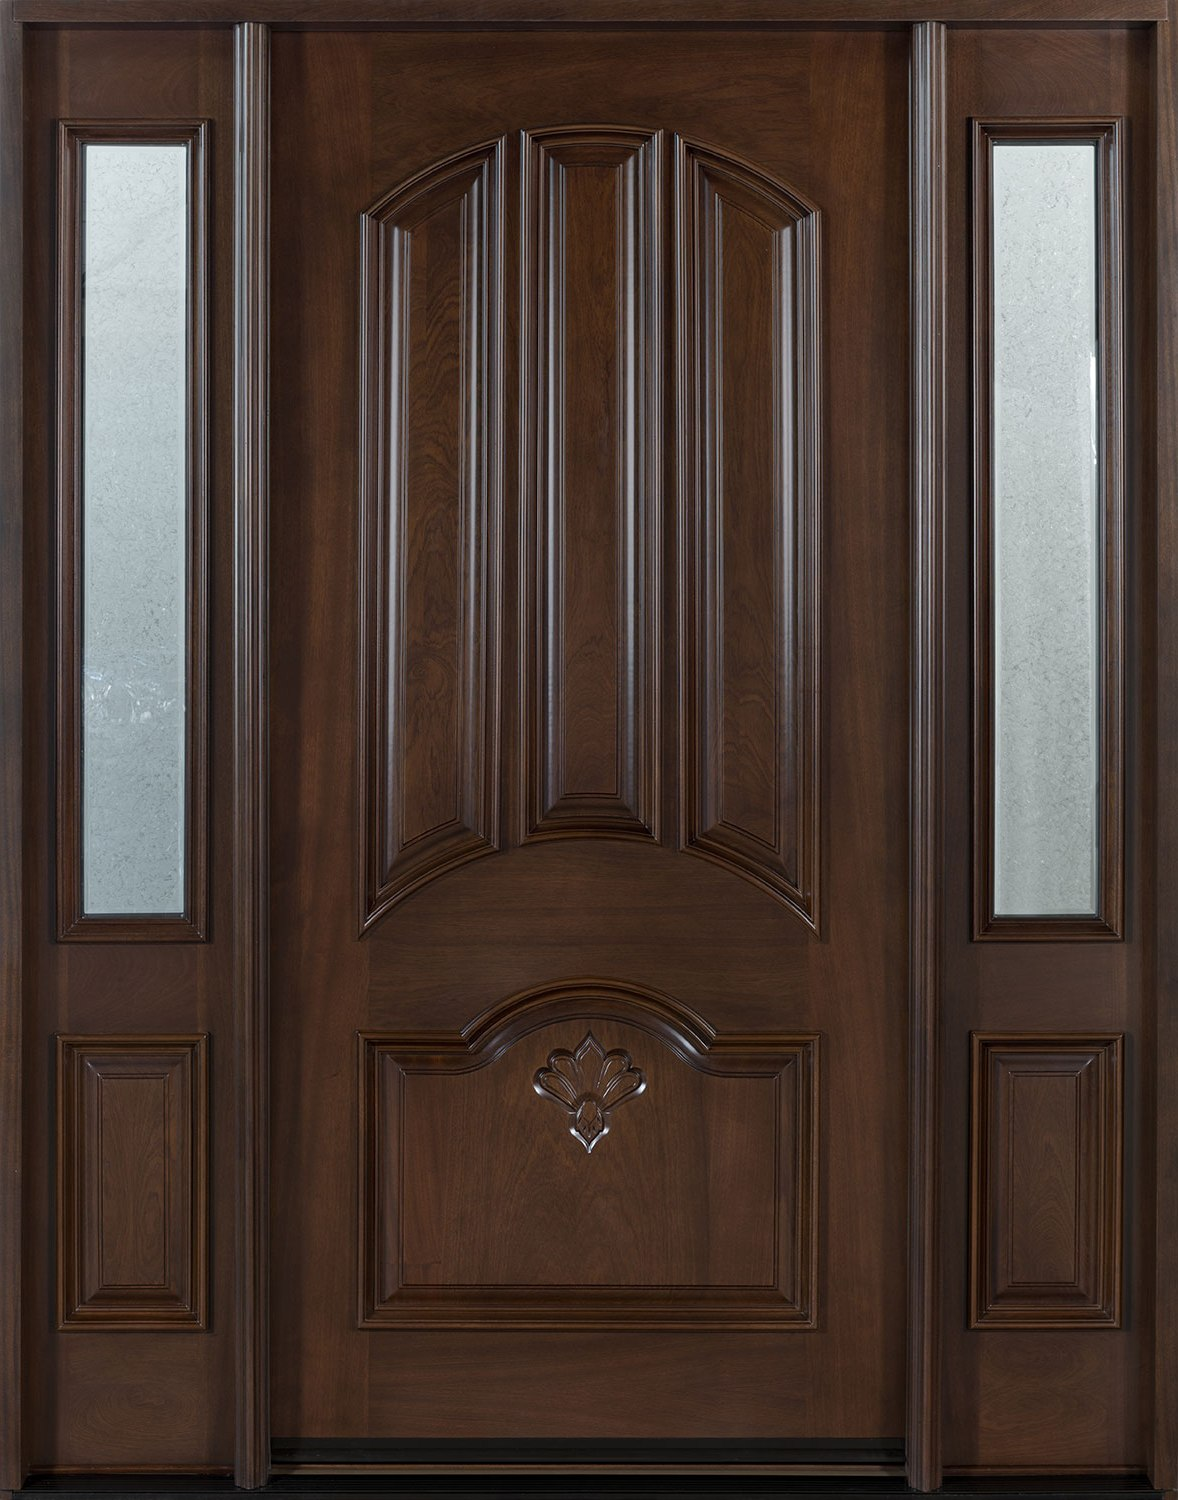 Exterior Door solid exterior door pics : Wood Exterior Front Doors